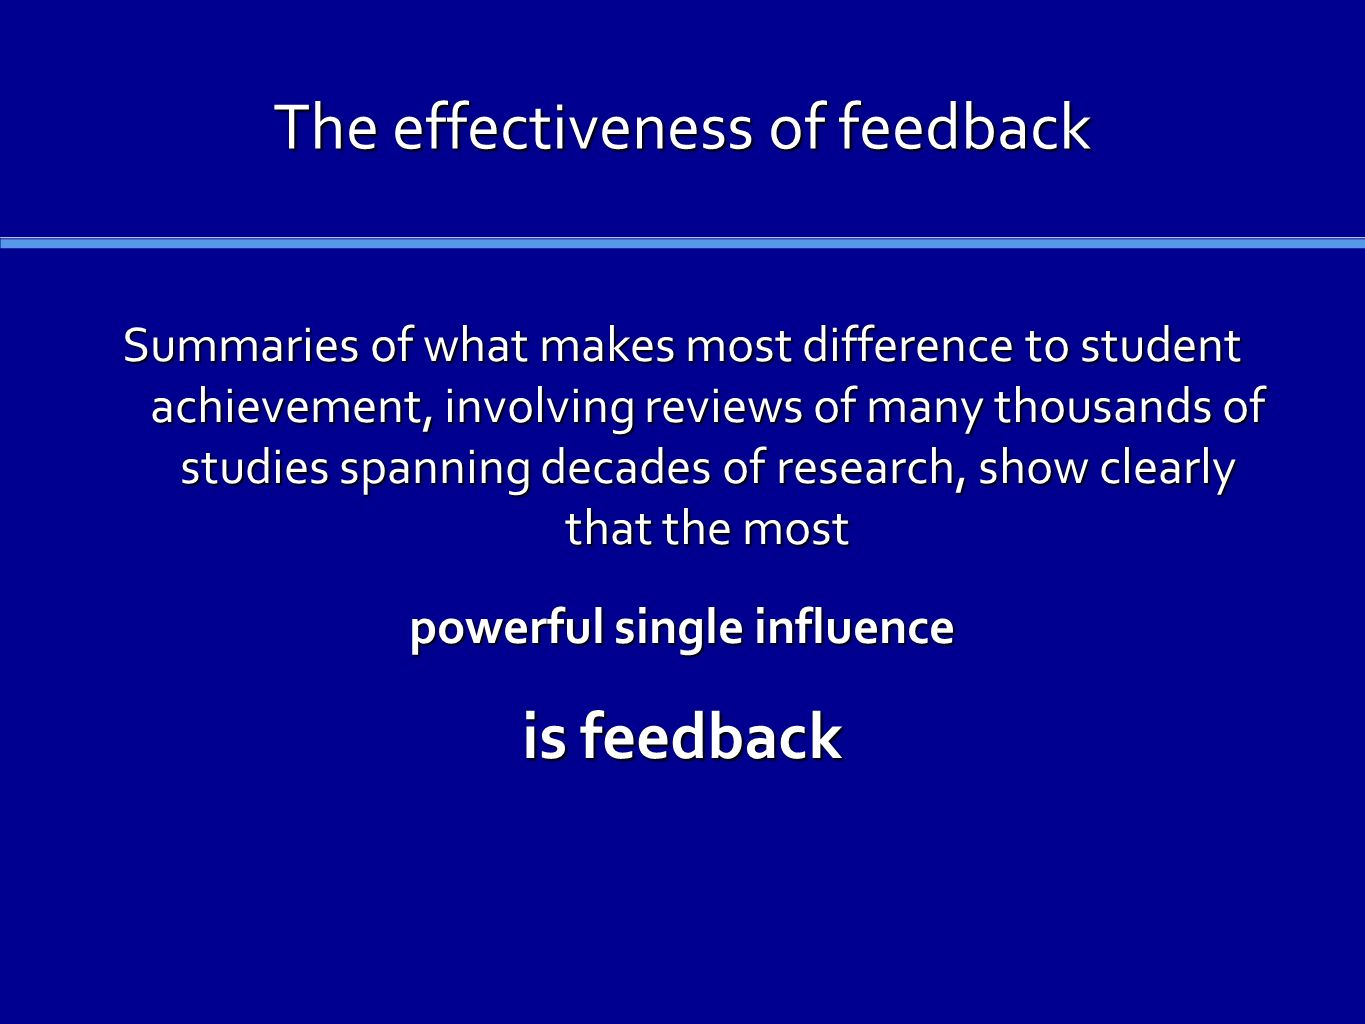 The effectiveness of feedback Summaries of what makes most difference to student achievement, involving reviews of many thousands of studies spanning decades of research, show clearly that the most powerful single influence is feedback